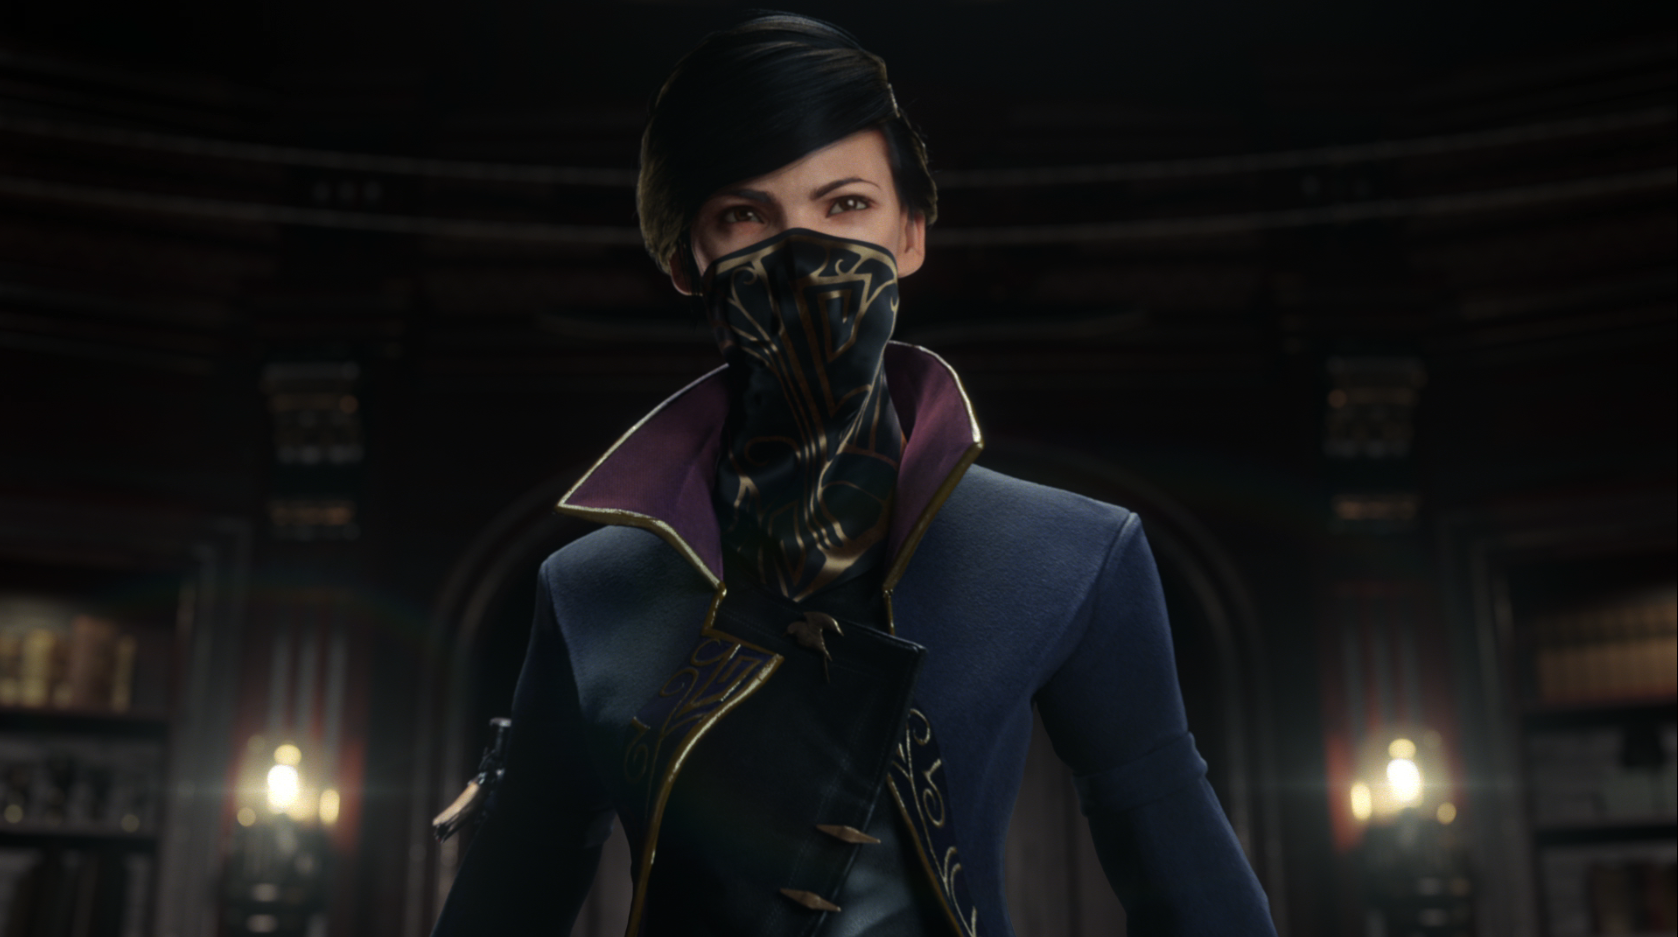 115902_dyPTIGMMpU_dishonored_1.png